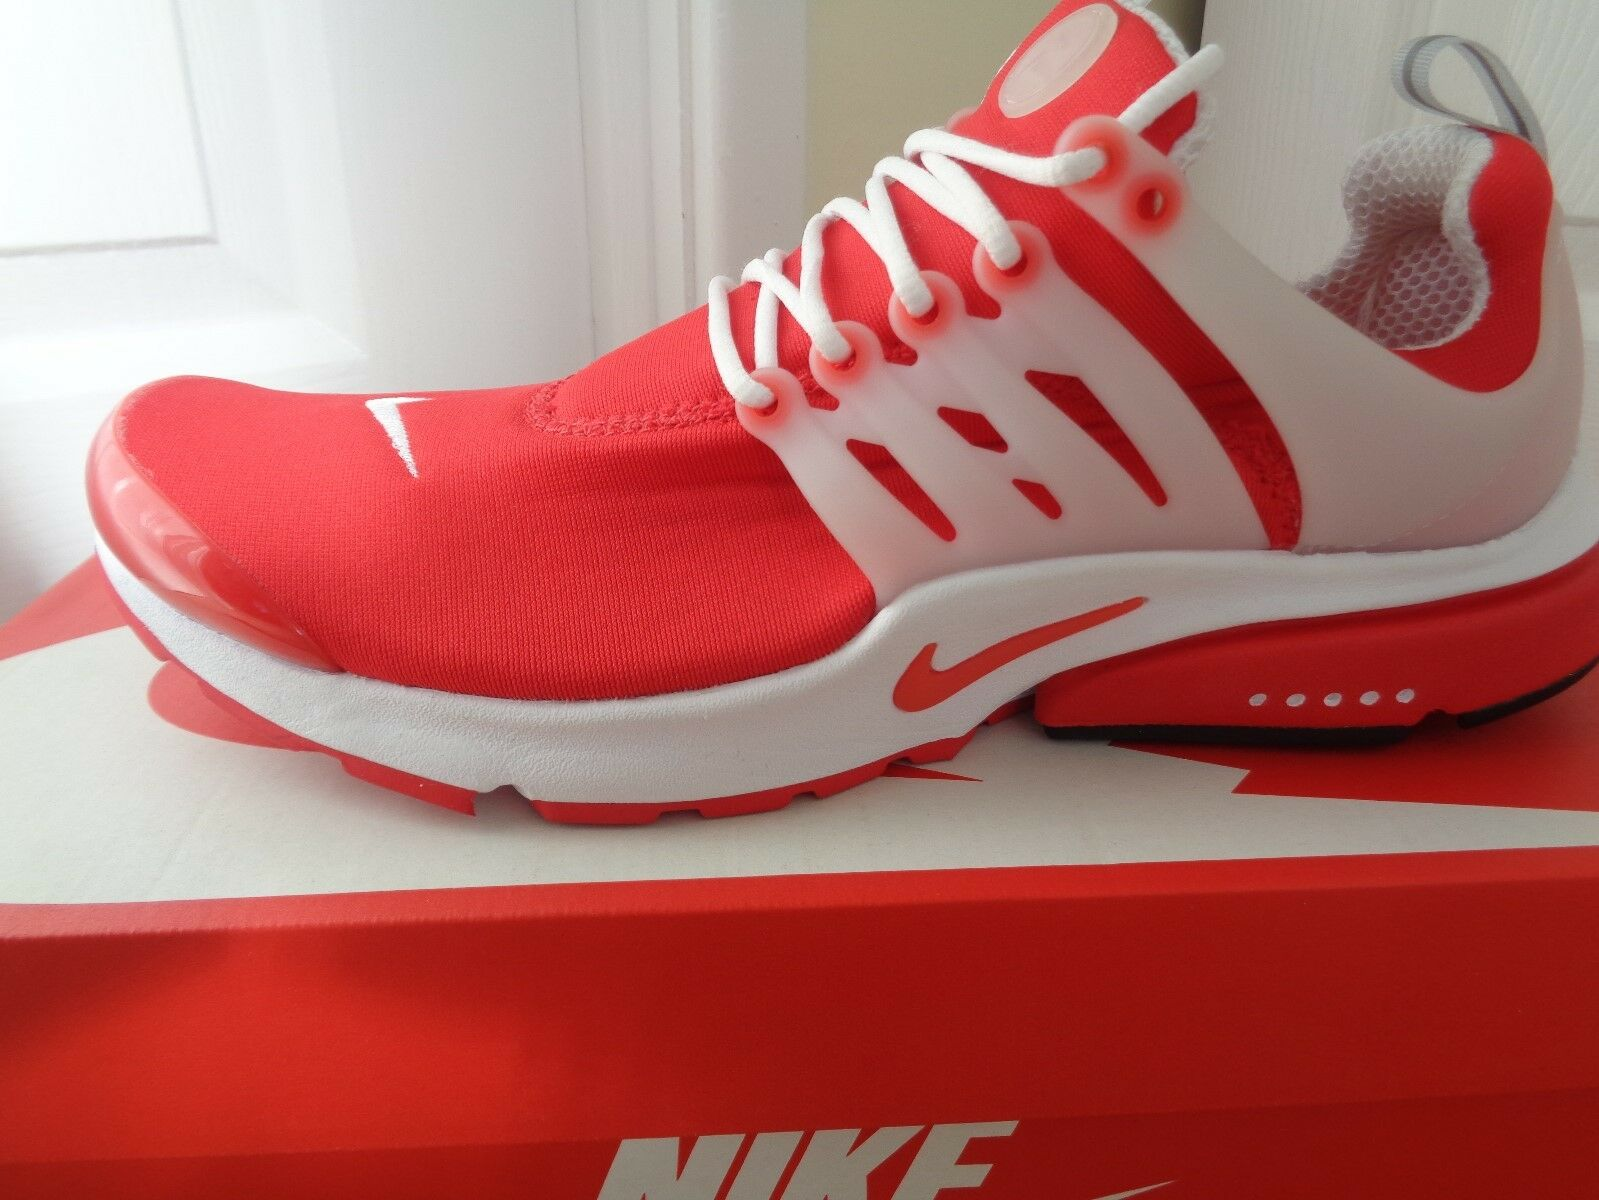 Nike Air Presto trainers sneakers shoes 848132 611 eu 40 us 7 NEW+BOX